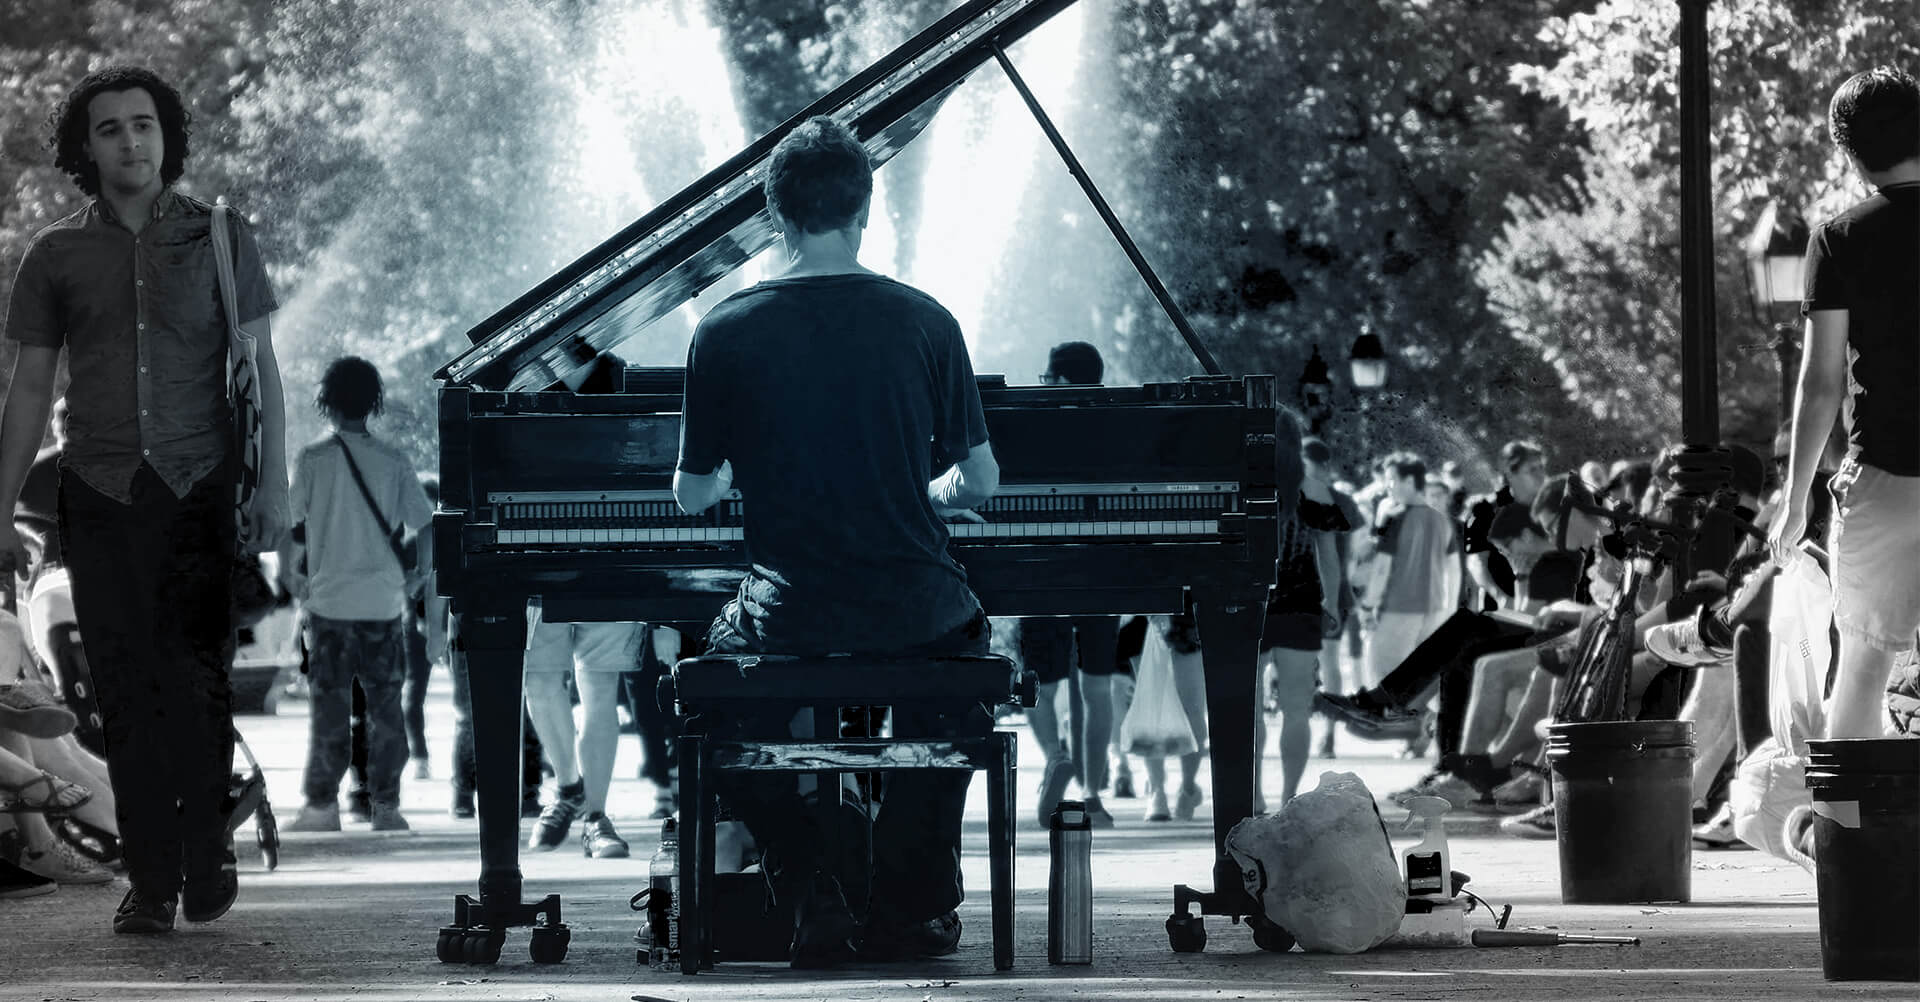 Feature image - man sits and plays grand piano in middle of a busy walkway with people all around